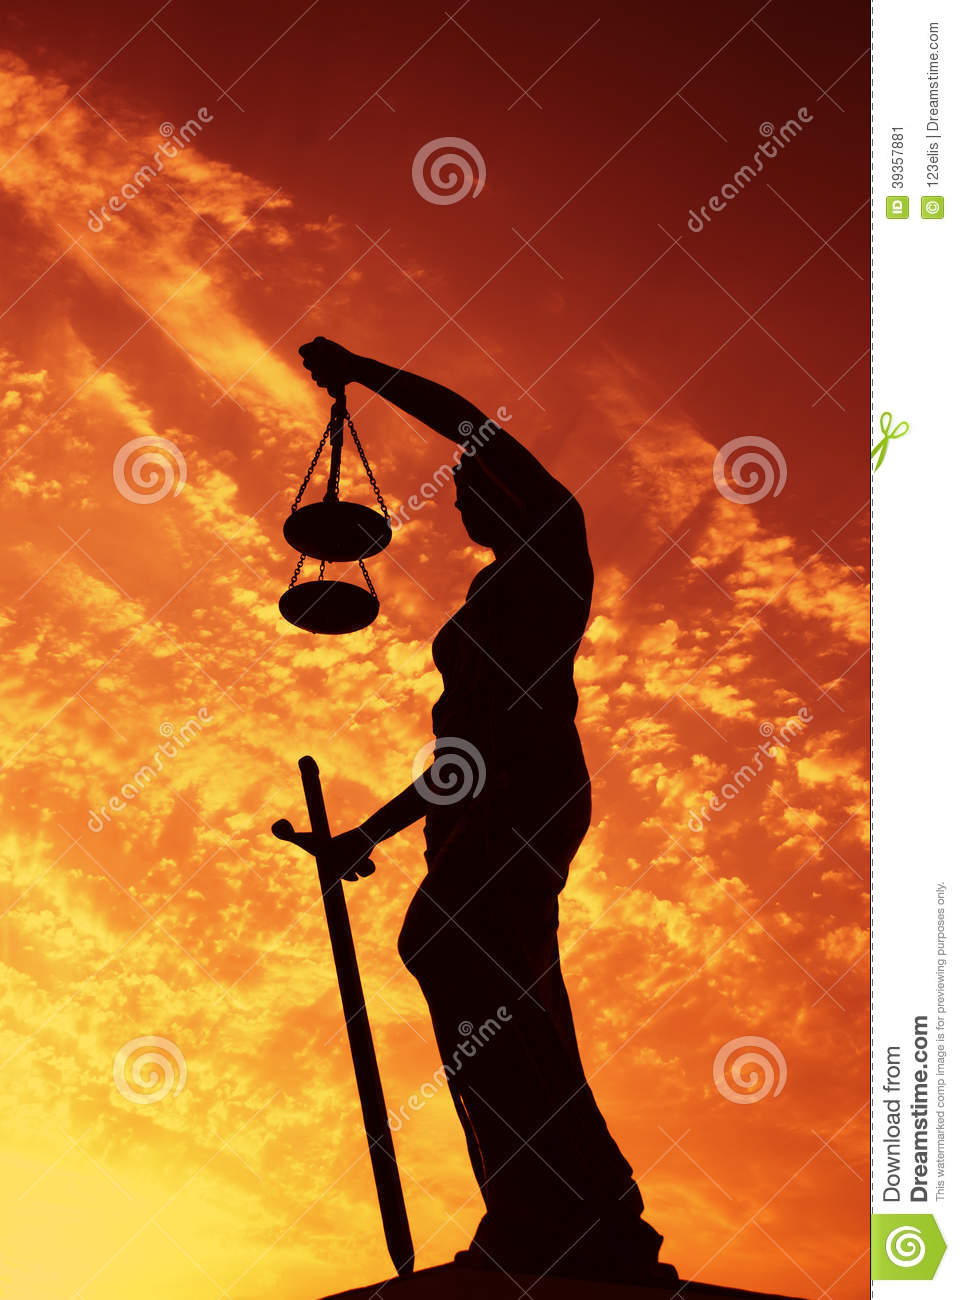 Lady Justice Stock Photo Image 39357881